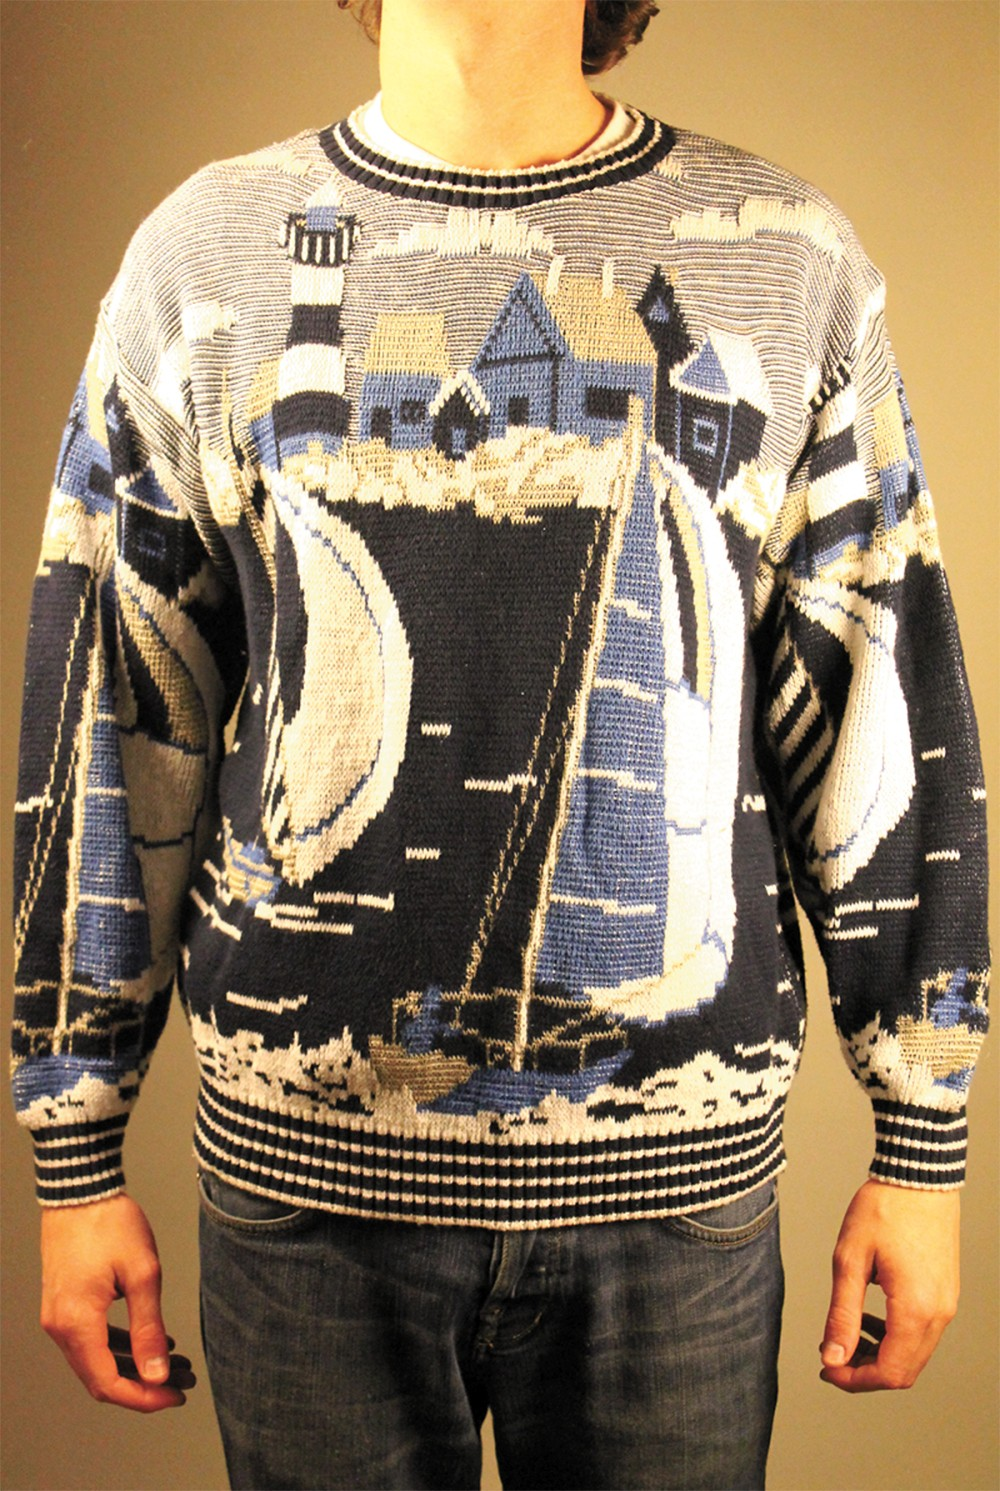 """An actual sweater available on the site: """"If you like sailing and sweaters then this piece is for you."""""""